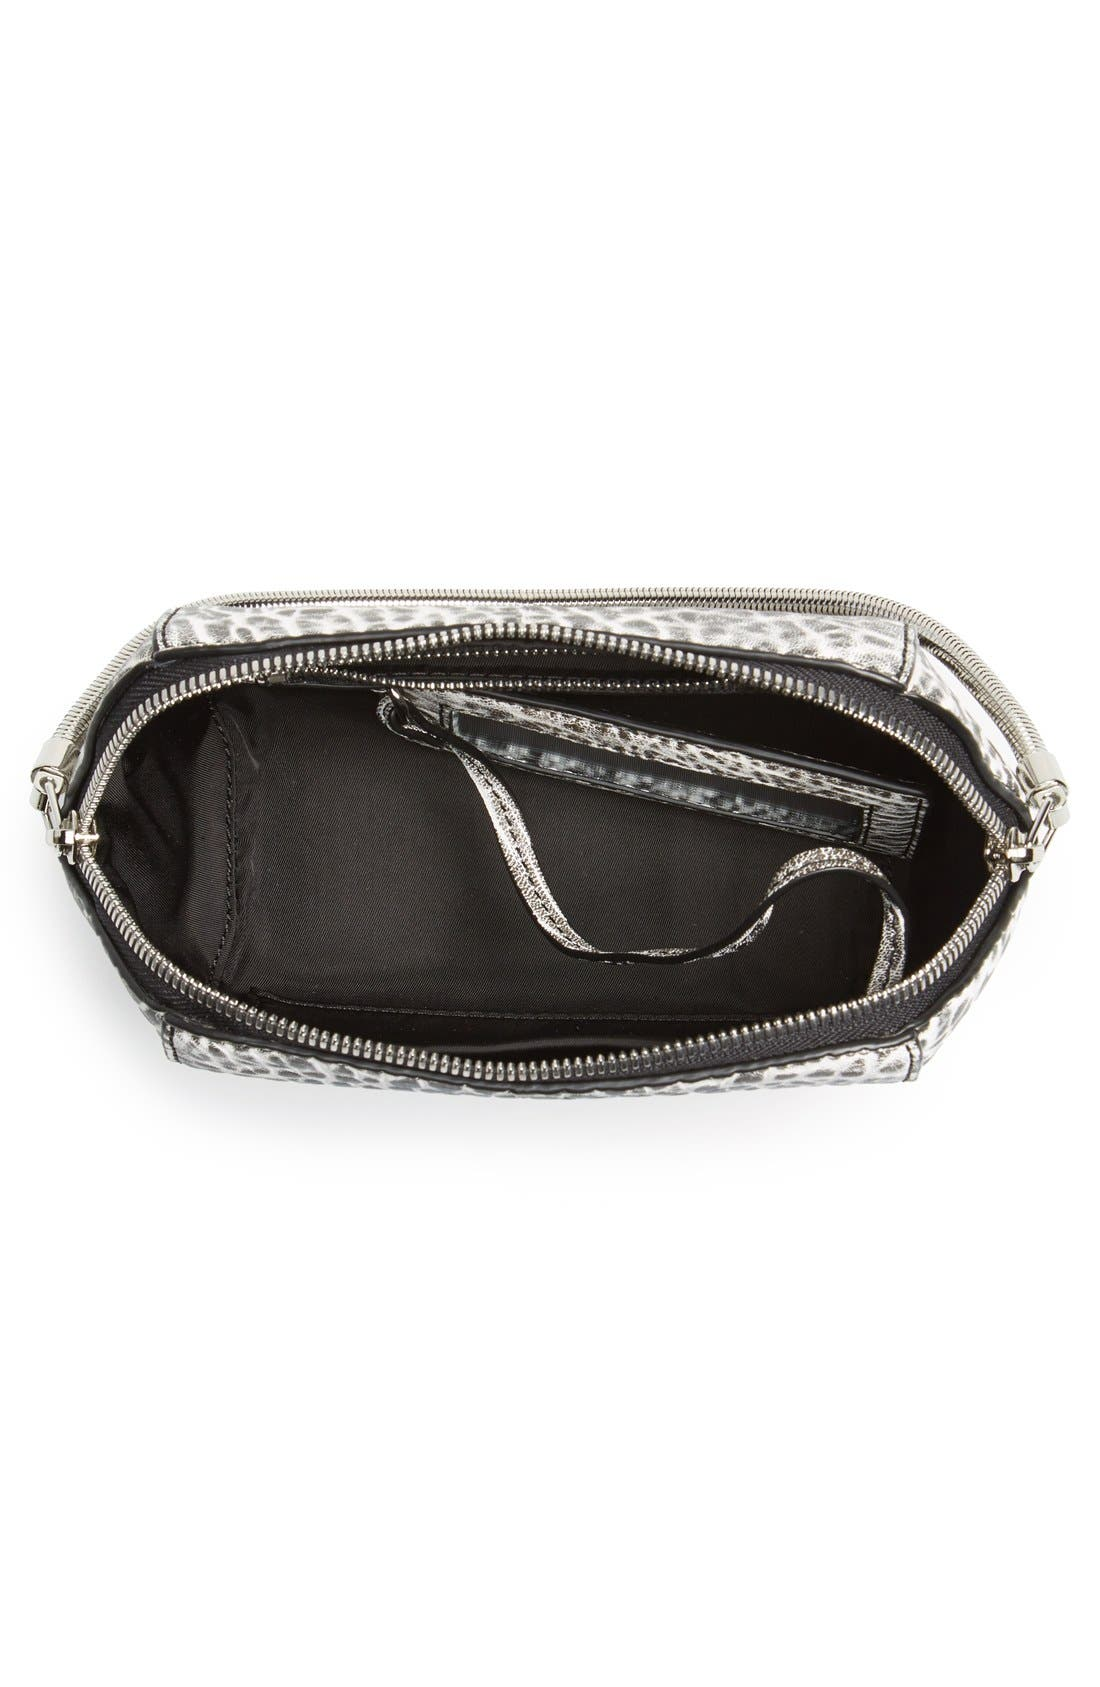 'Chastity' Clutch,                             Alternate thumbnail 3, color,                             001